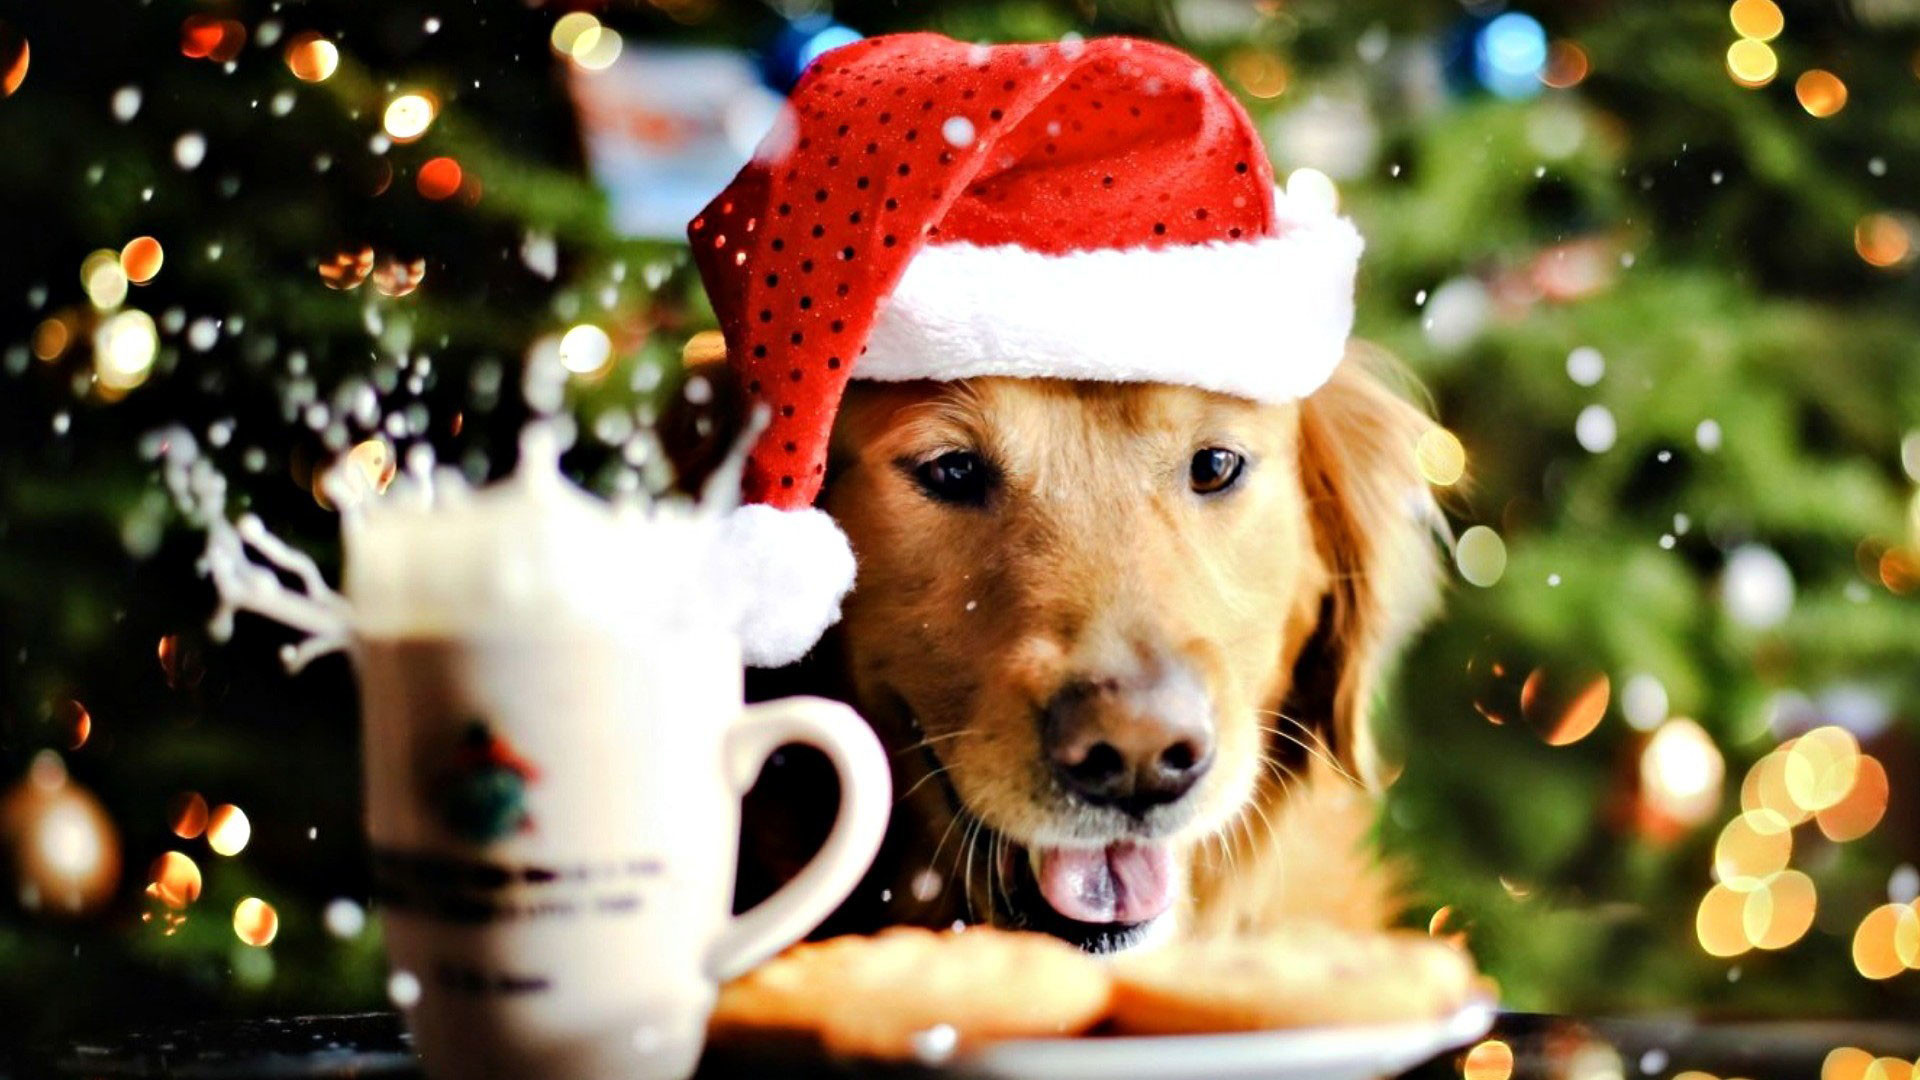 1920x1080 hd-pics-photos-attractive-christmas-dog-celebrations-decorations-